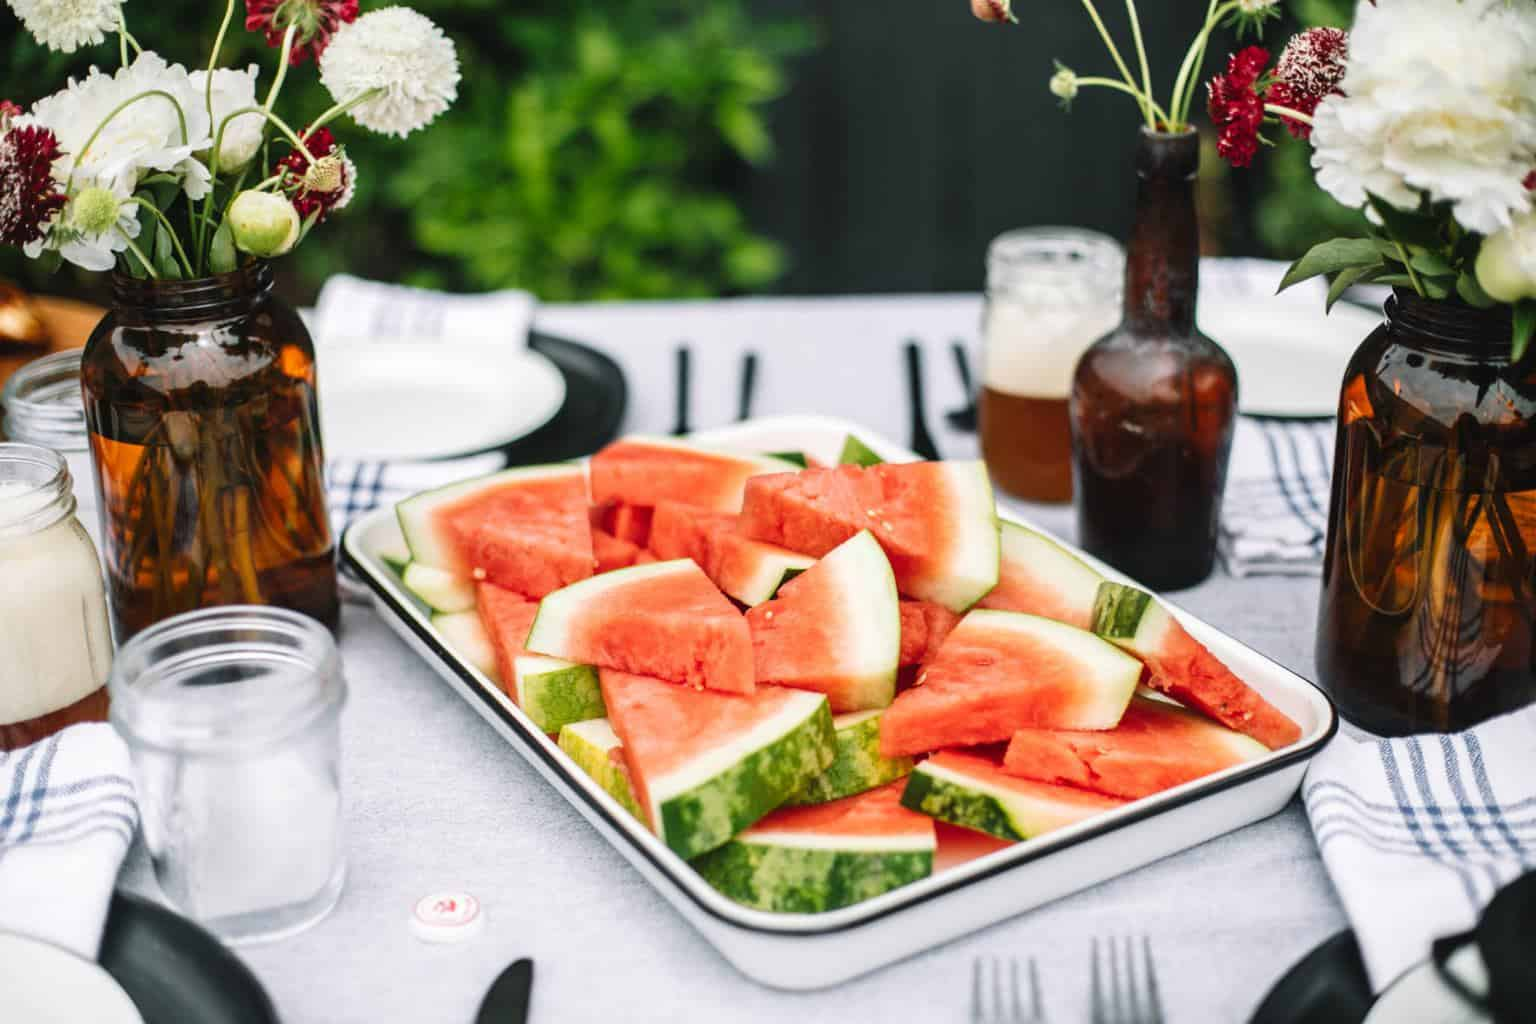 Platter of watermelon on a fathers day bbq table.